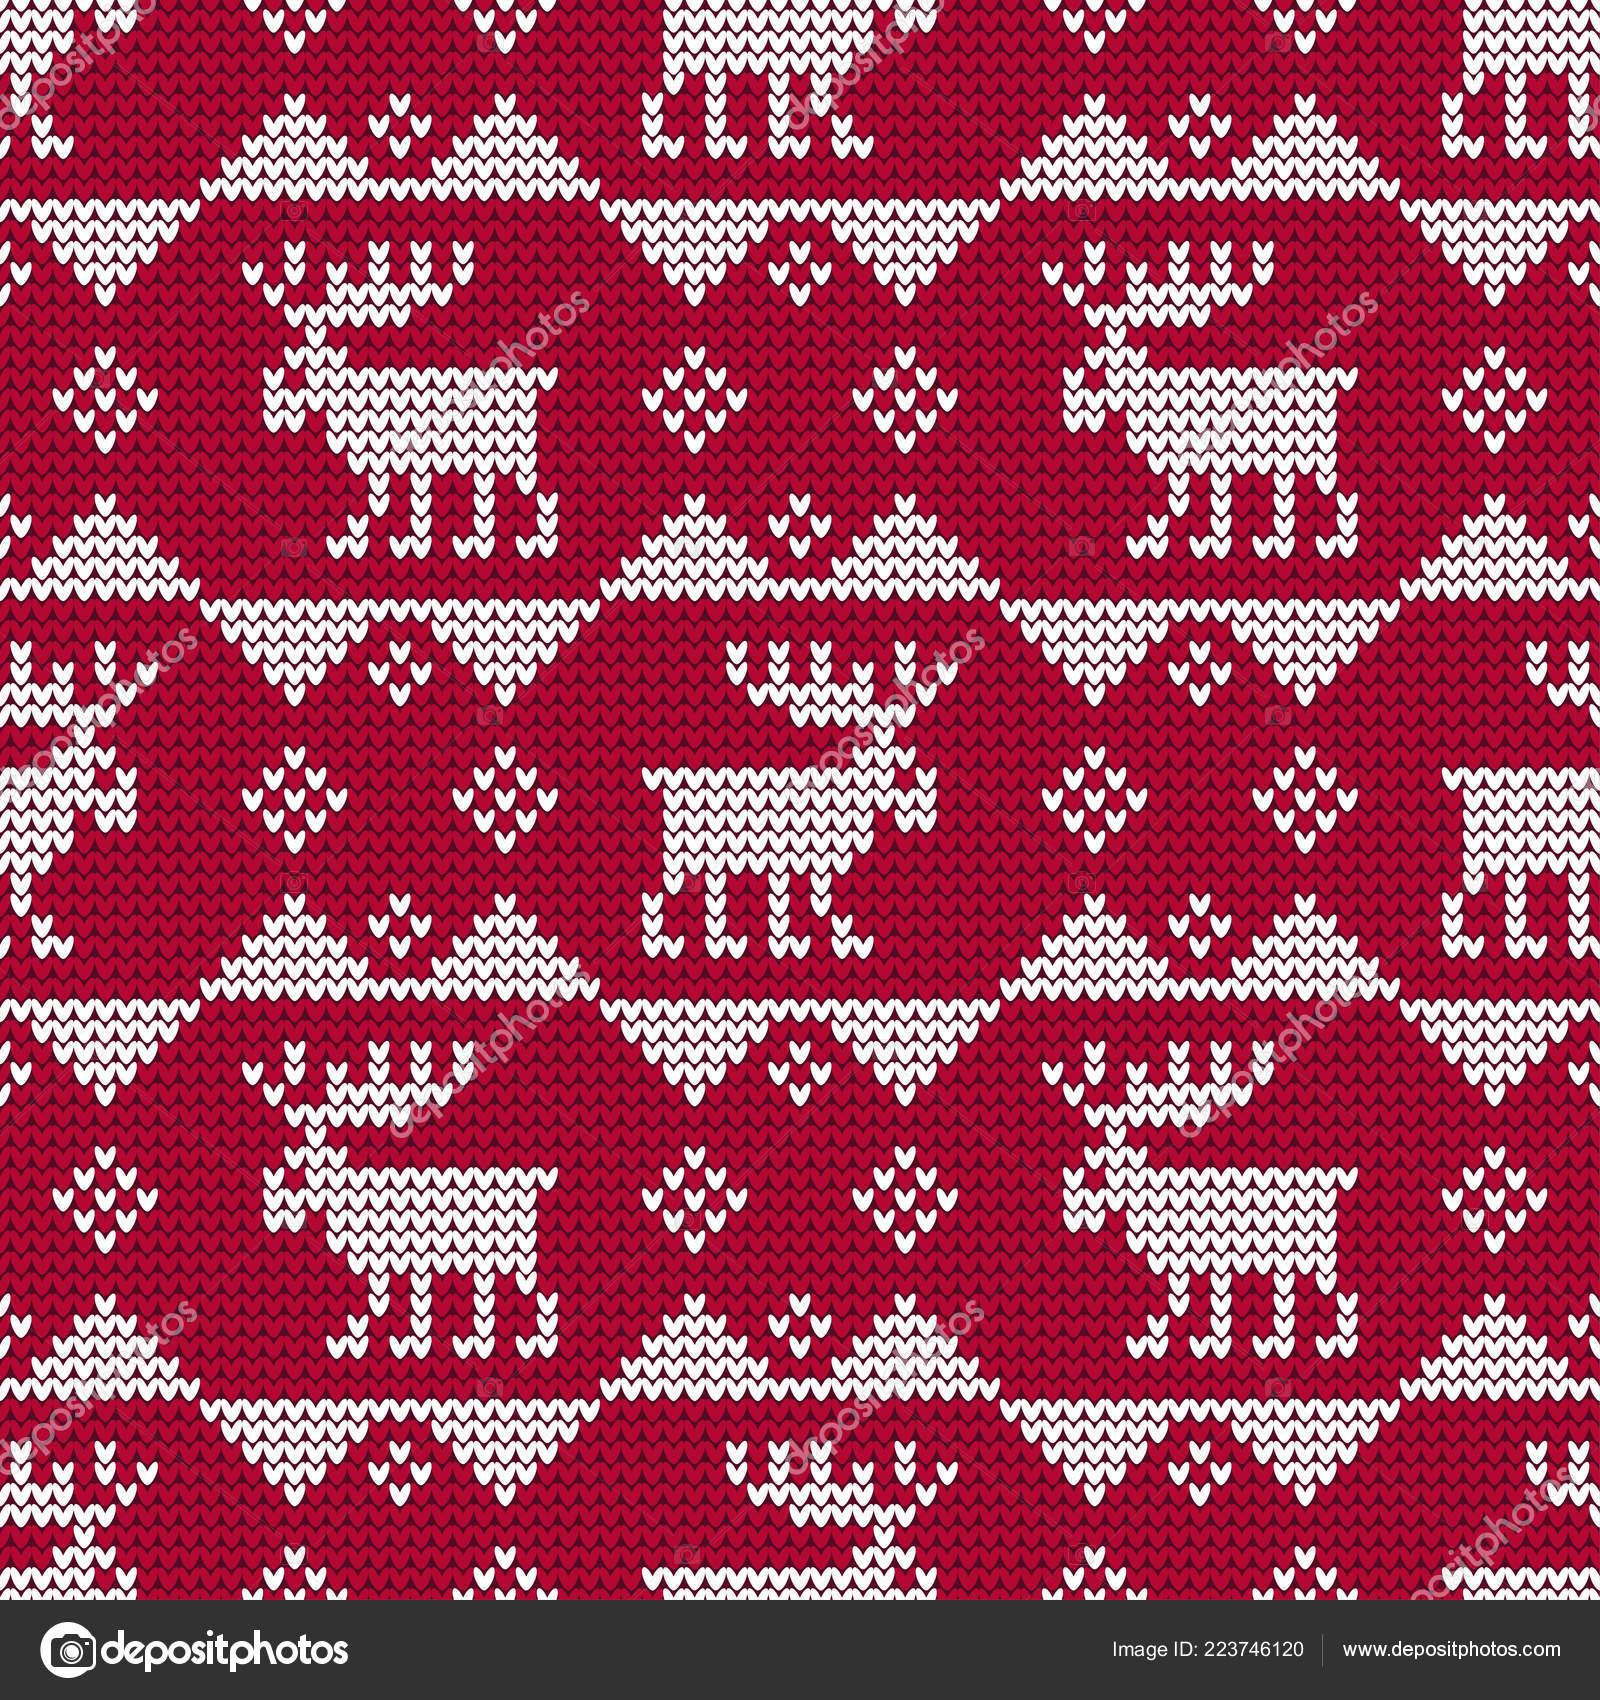 2b5de8497e5e A knitted sweater with Reindeer. Seamless vector background. Christmas  pattern. Can be used for wallpaper